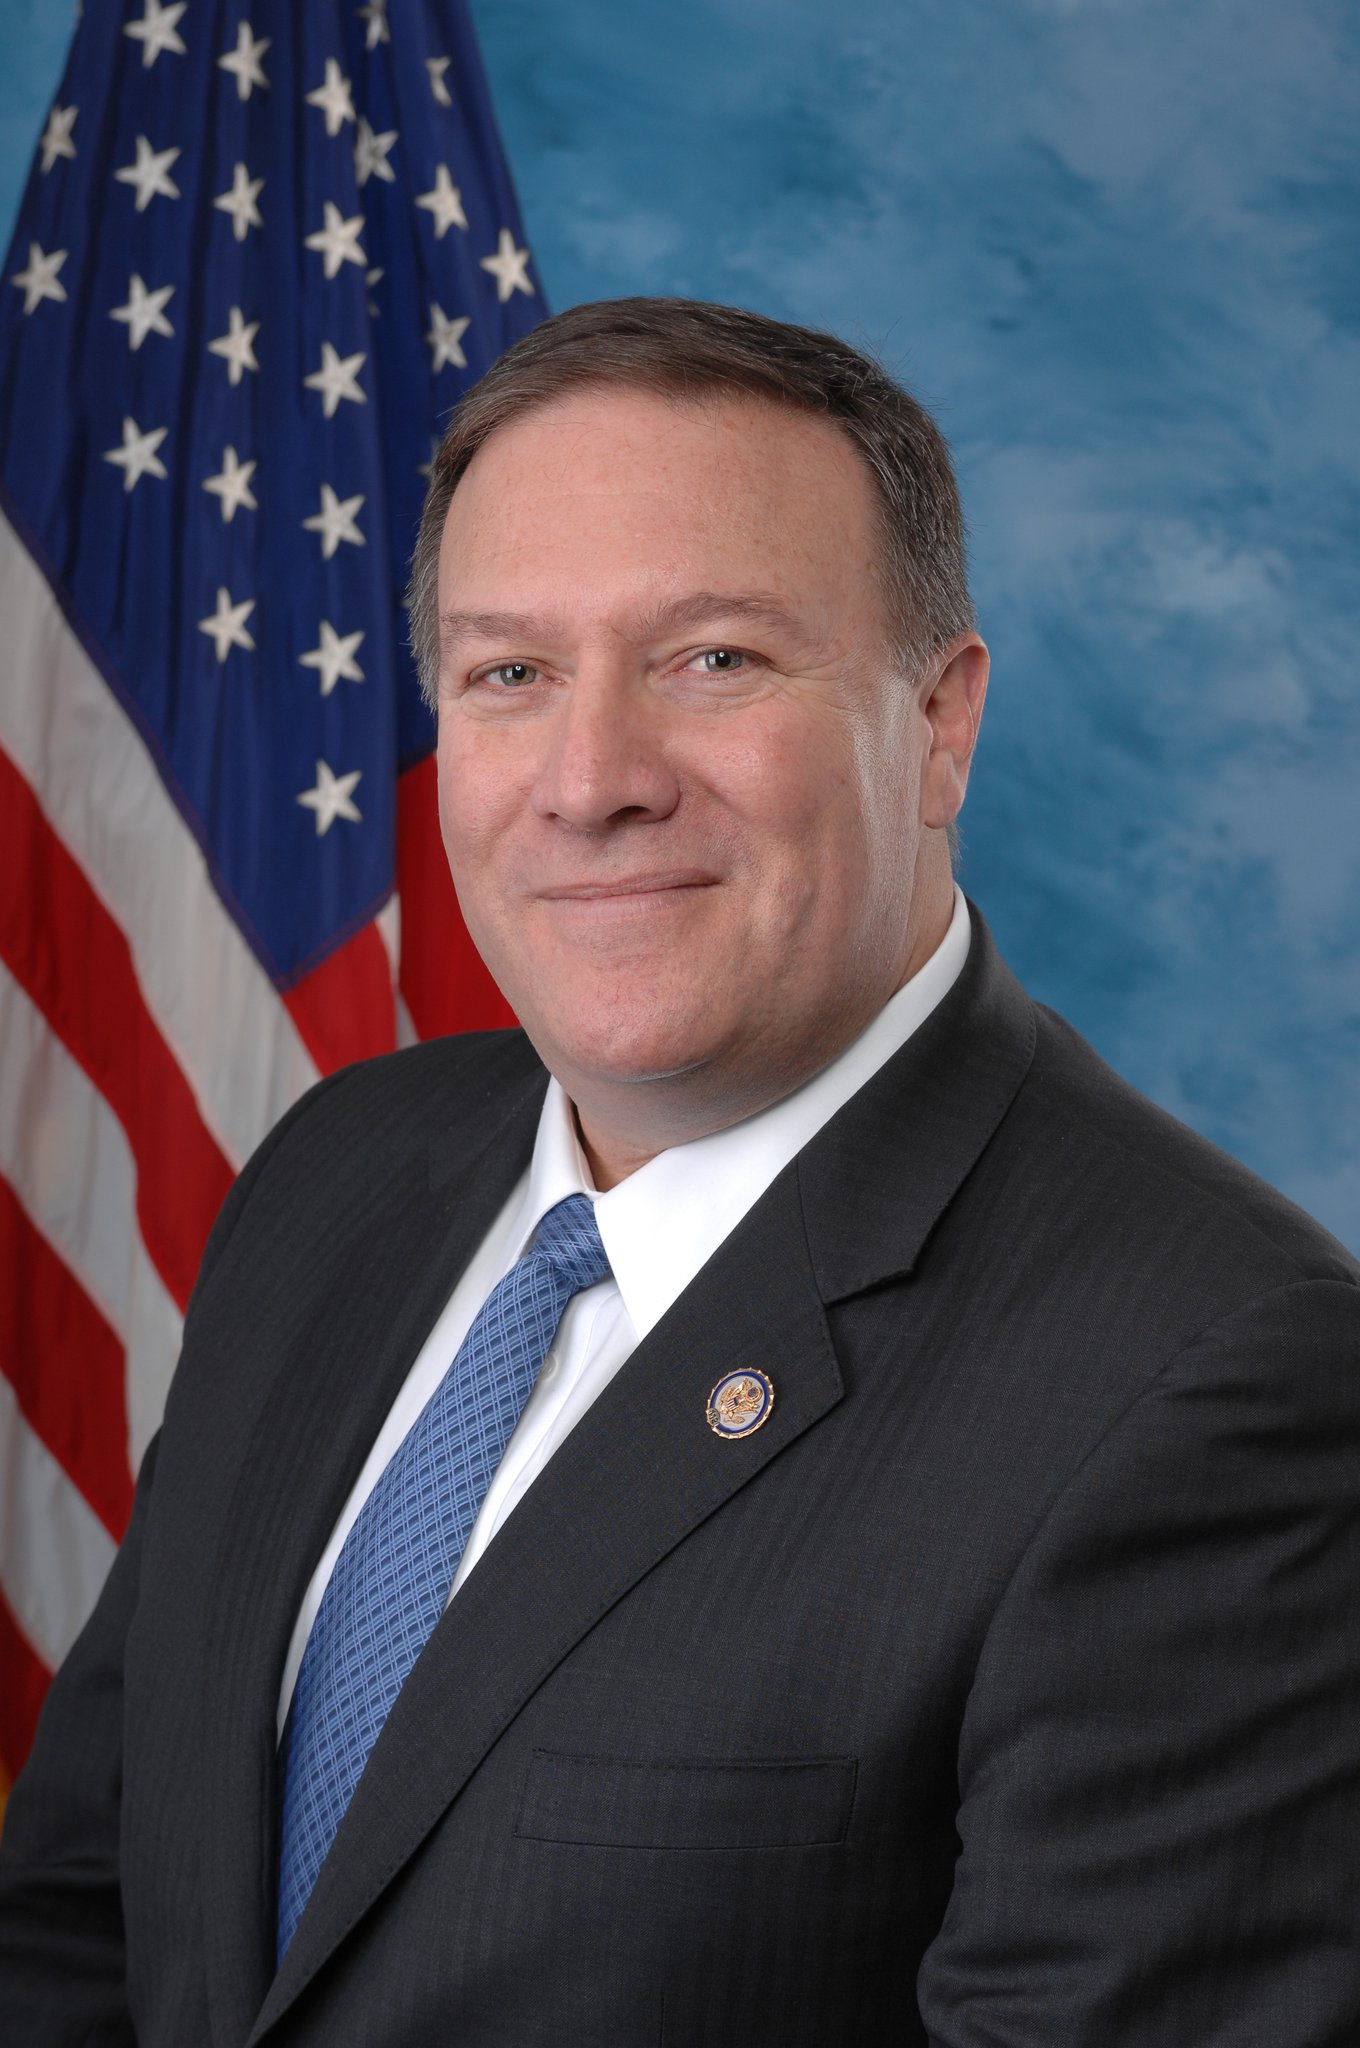 Mike Pompeo Official Portrait 112th Congress.jpg